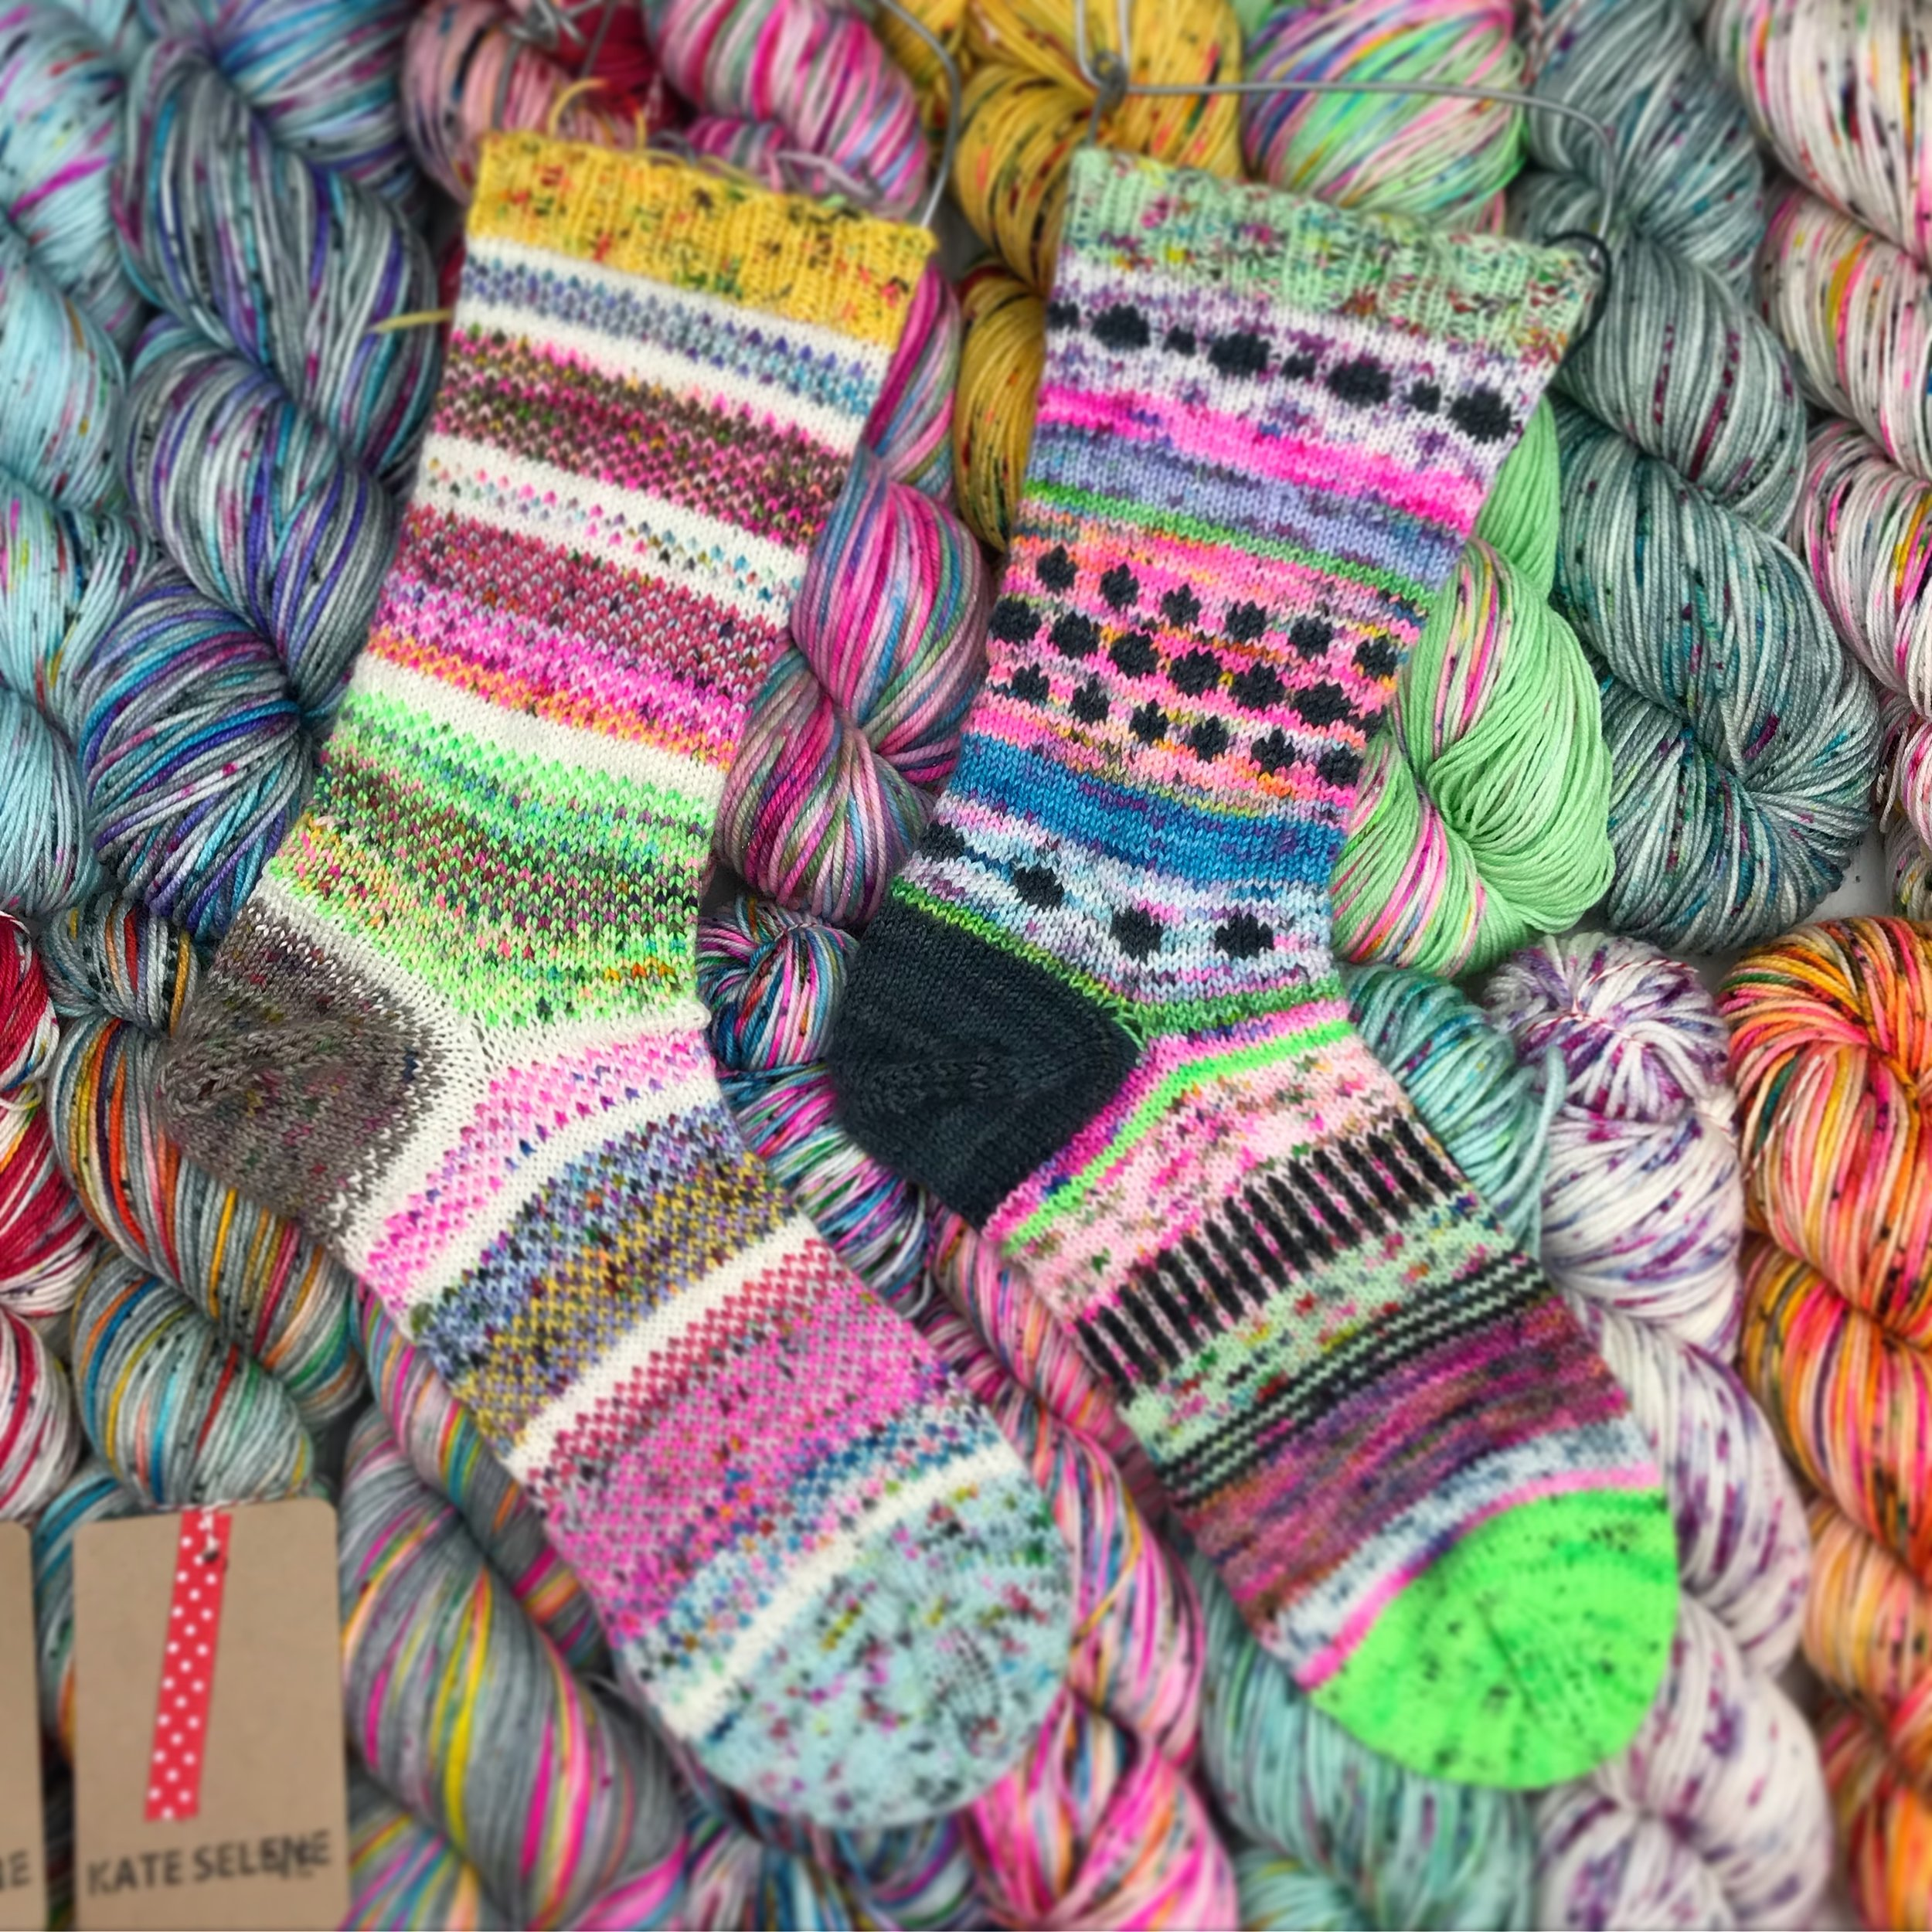 Scrappy Socks! - If you are going to talk about scrappy makes then I must insist on scrappy socks! there was a time when I wouldn't dream of trying socks, but once I found my perfect needles, 9